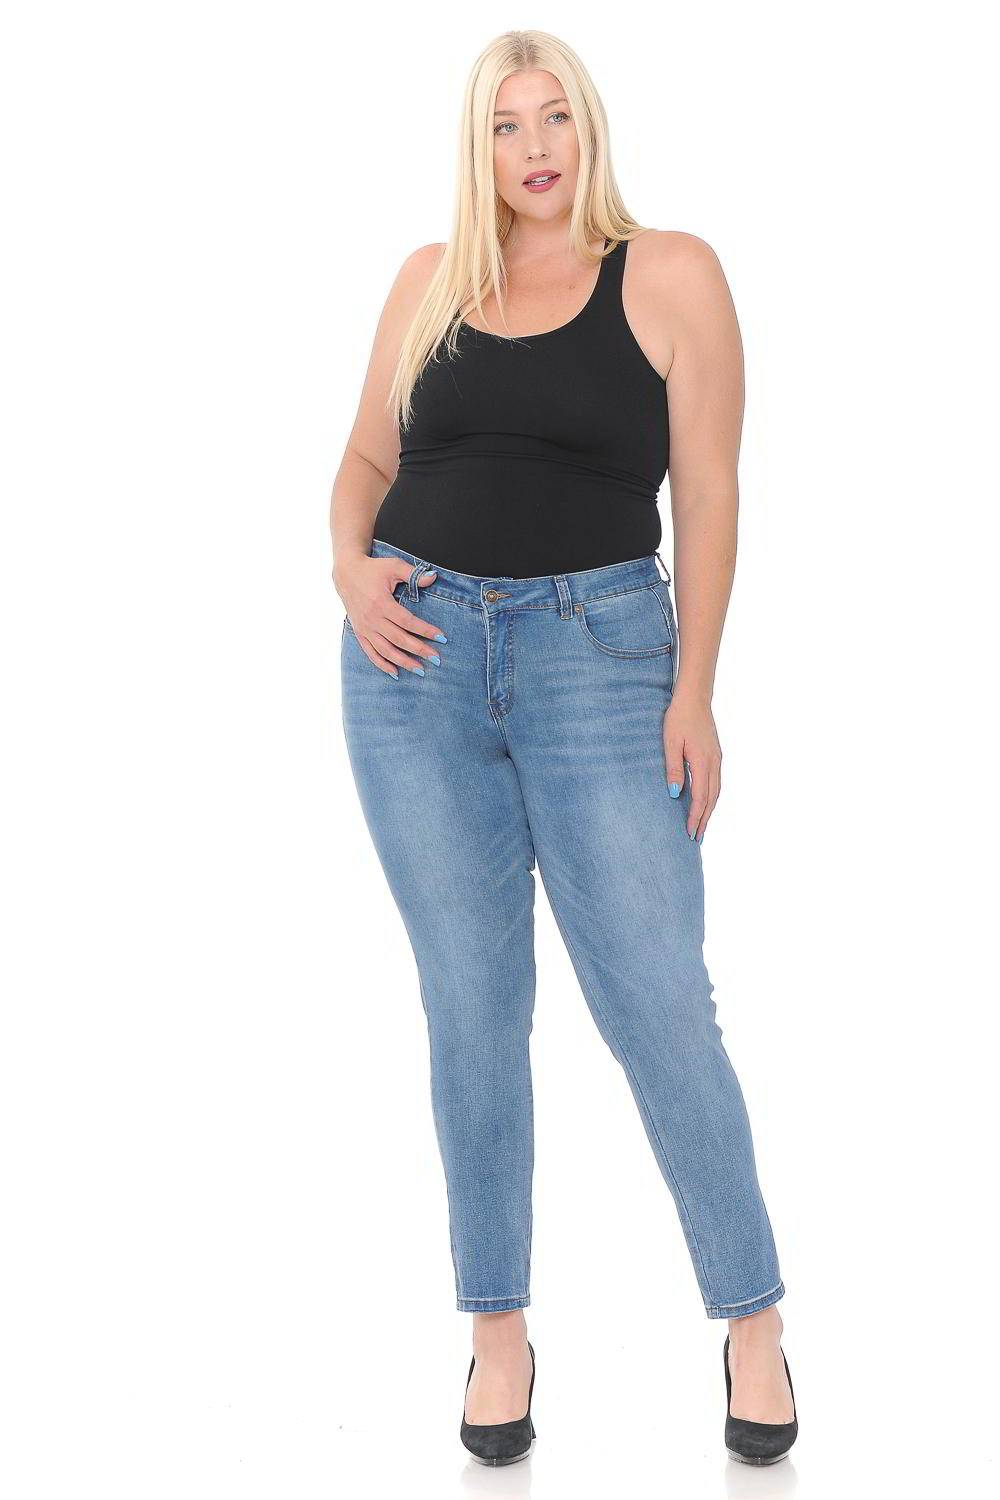 Sweet Look Premium Edition Women S Jeans Plus Size High Waist